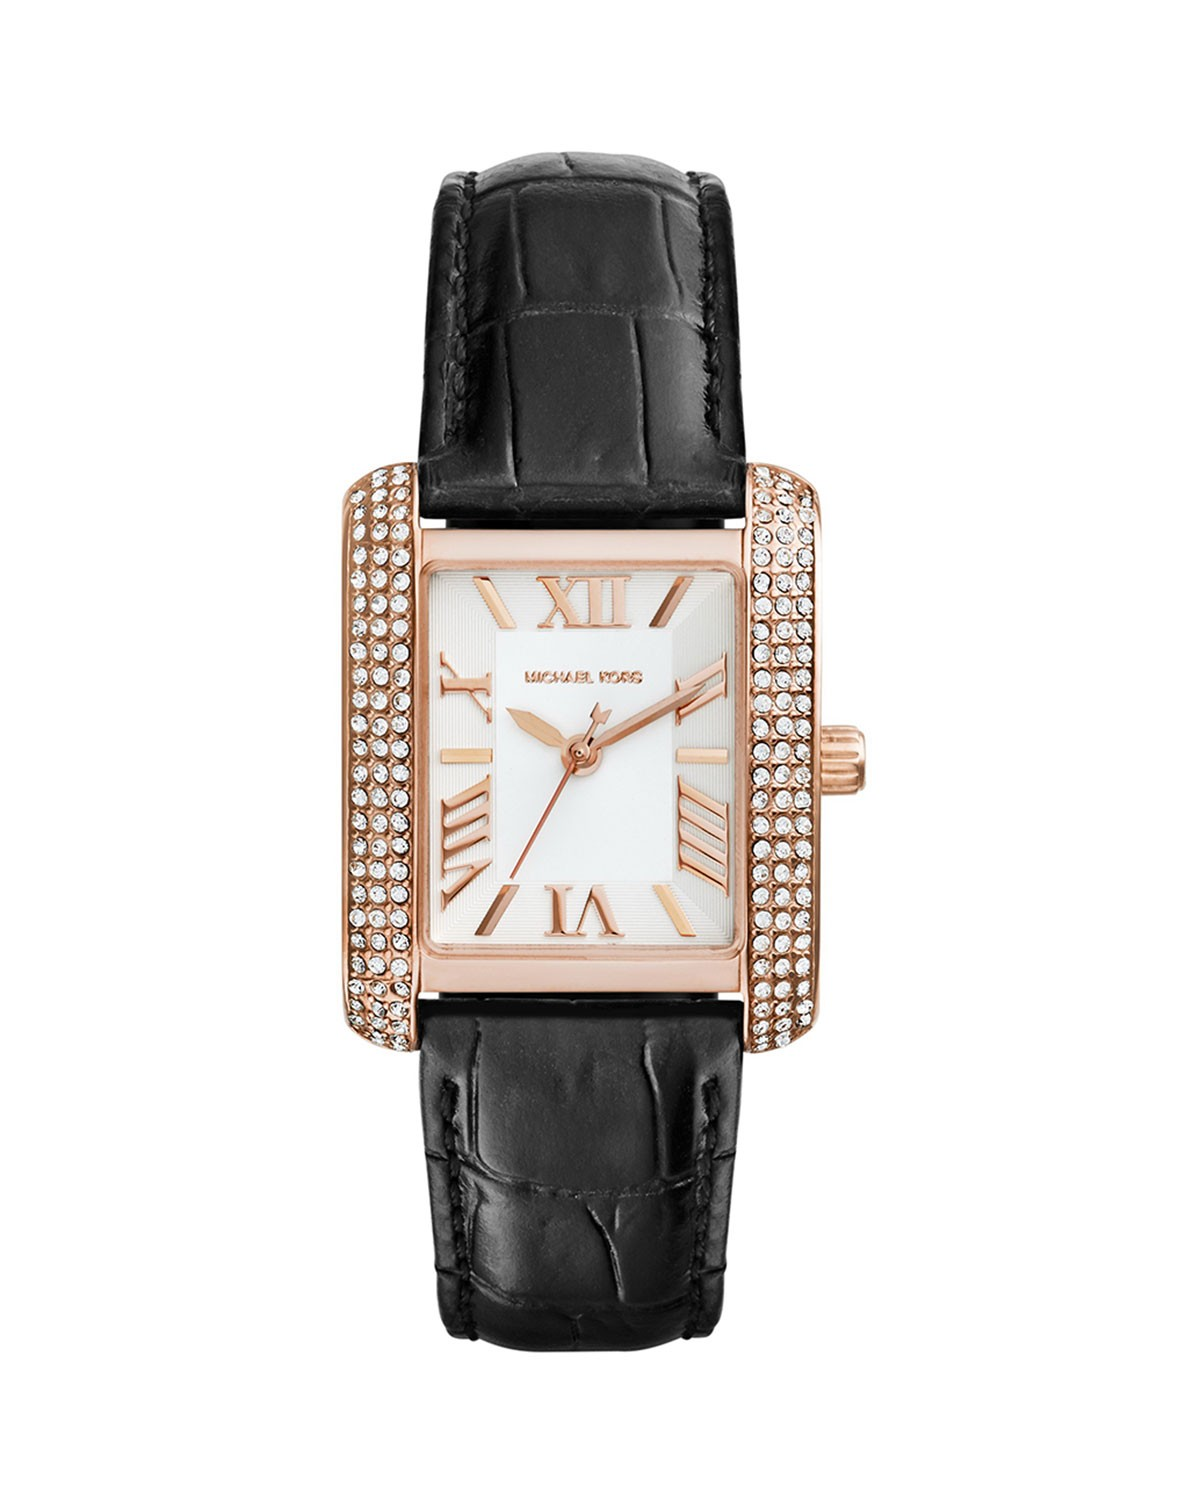 Mini Rose Golden/Black Emery Glitz Watch - Michael Kors - Rose gold